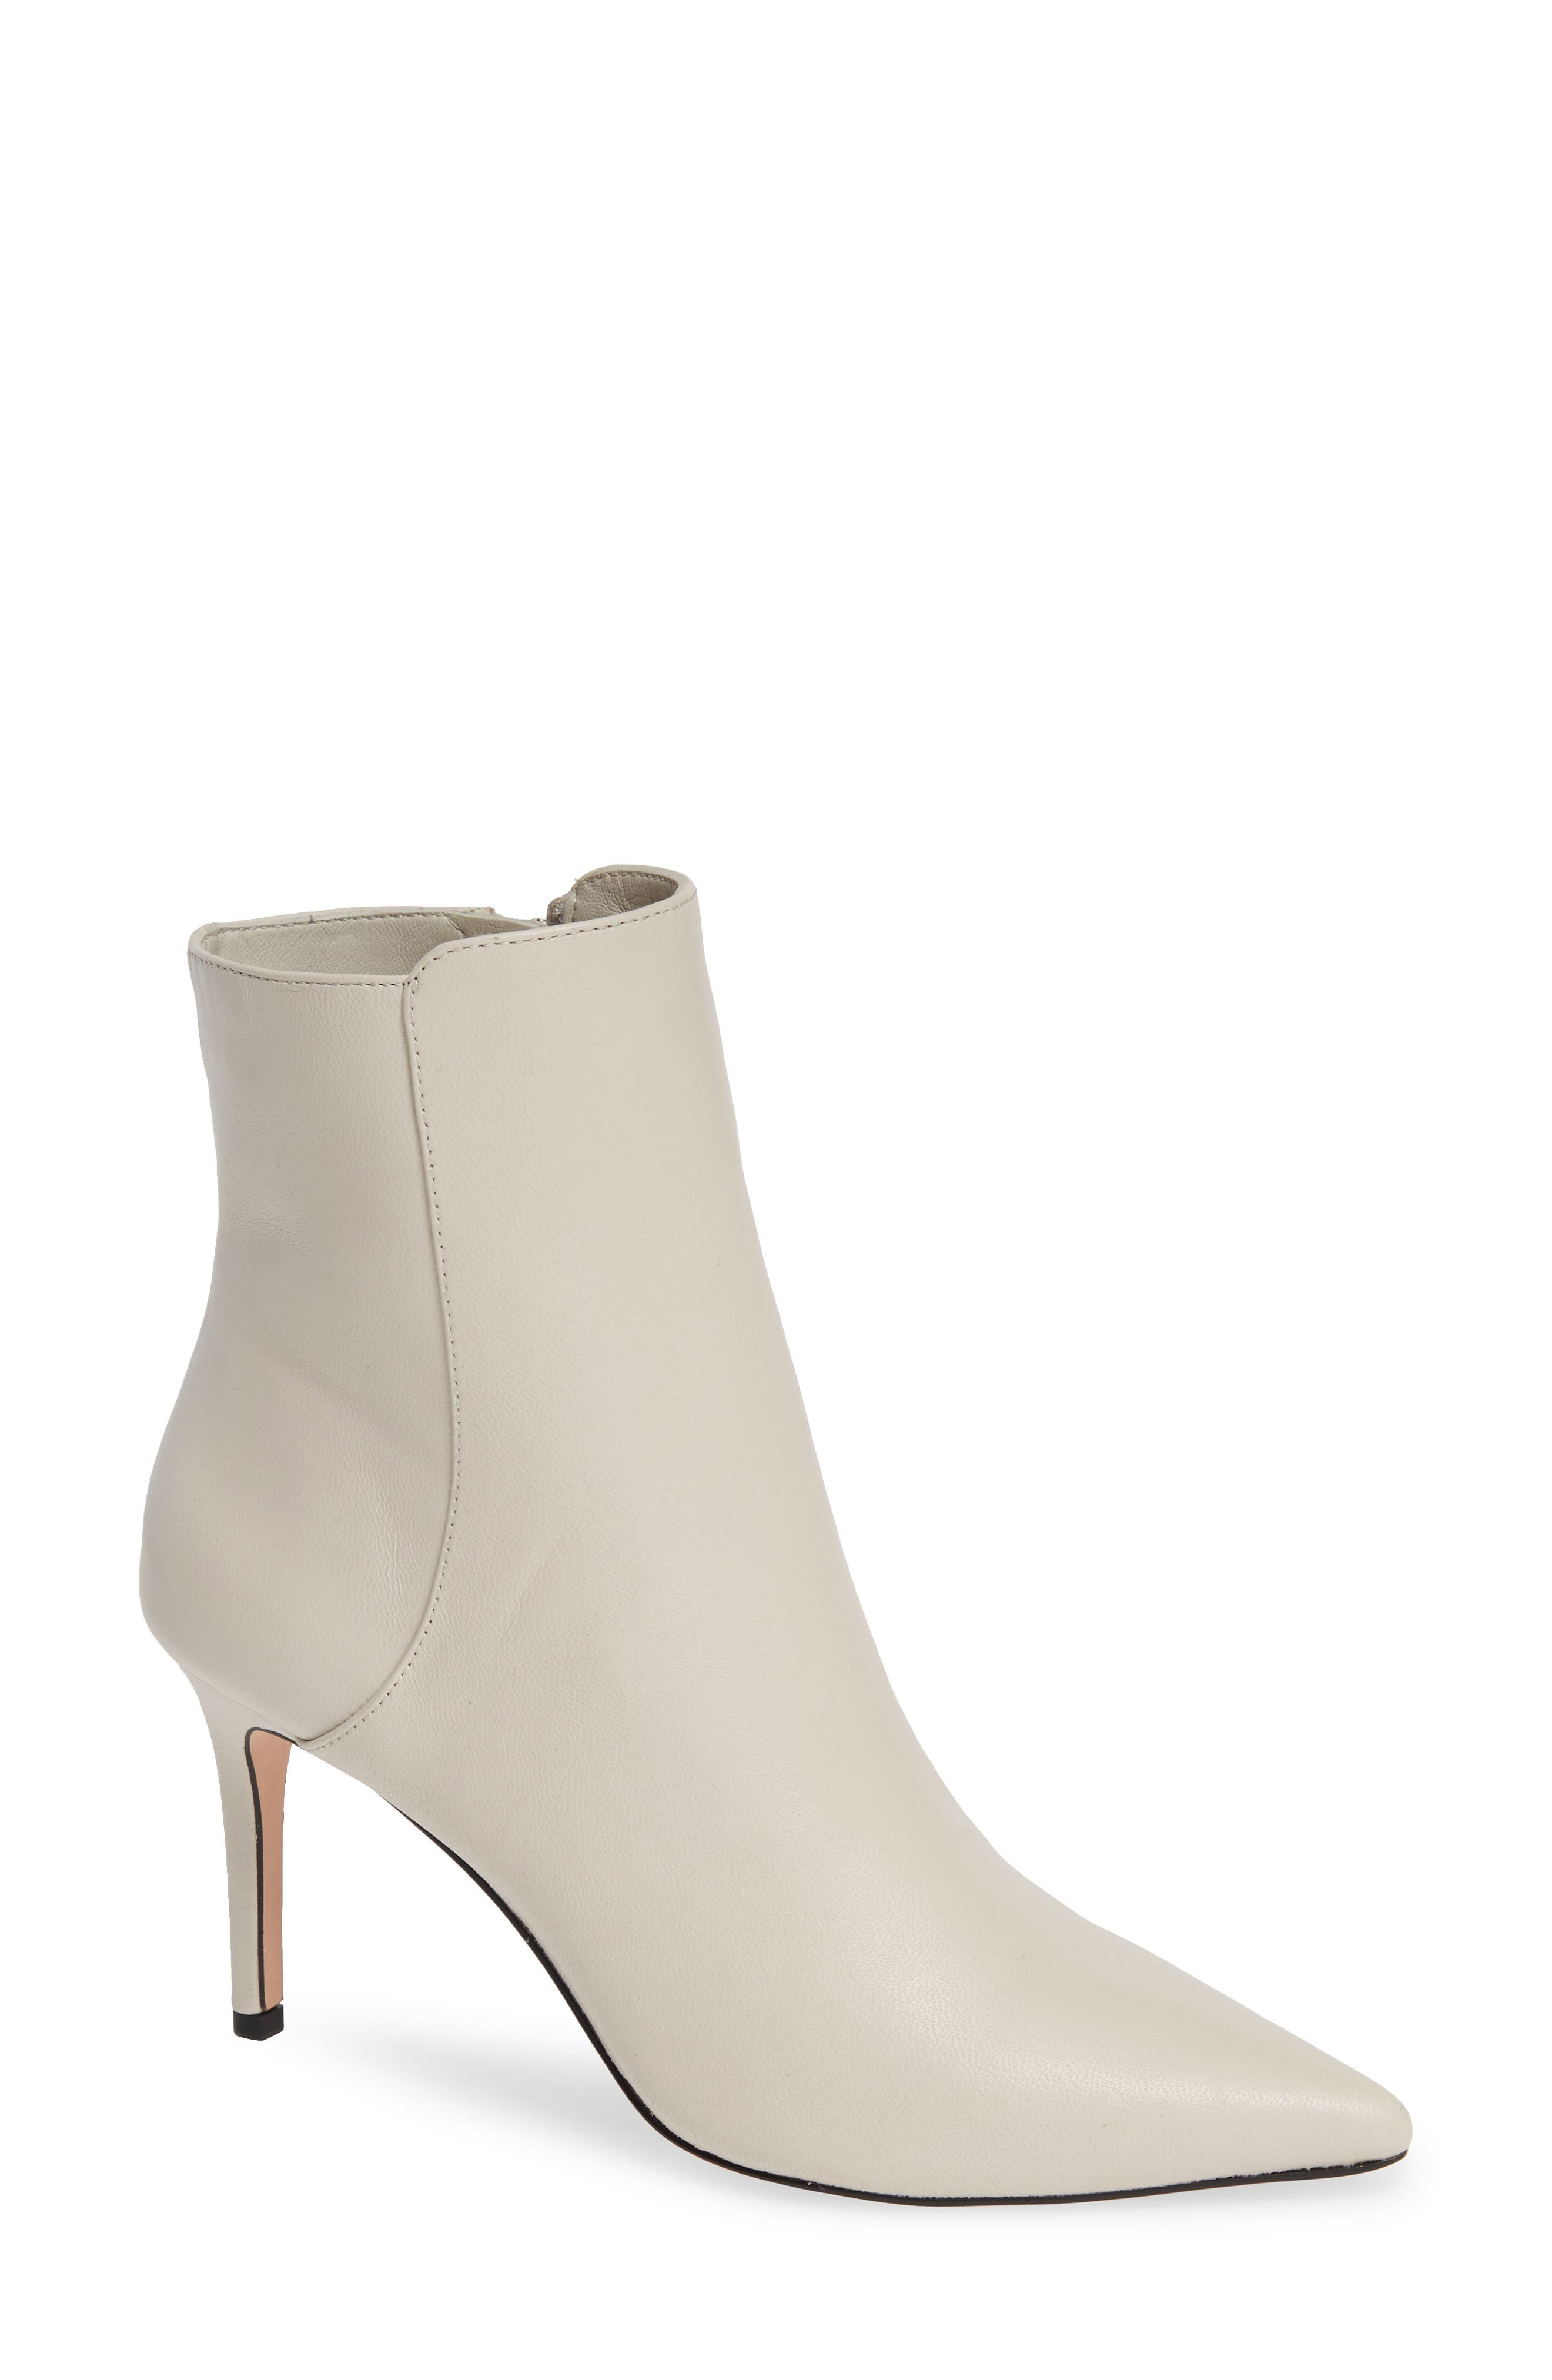 Pointed Stiletto Ankle Bootie,                             Main thumbnail 1, color,                             STONE LEATHER